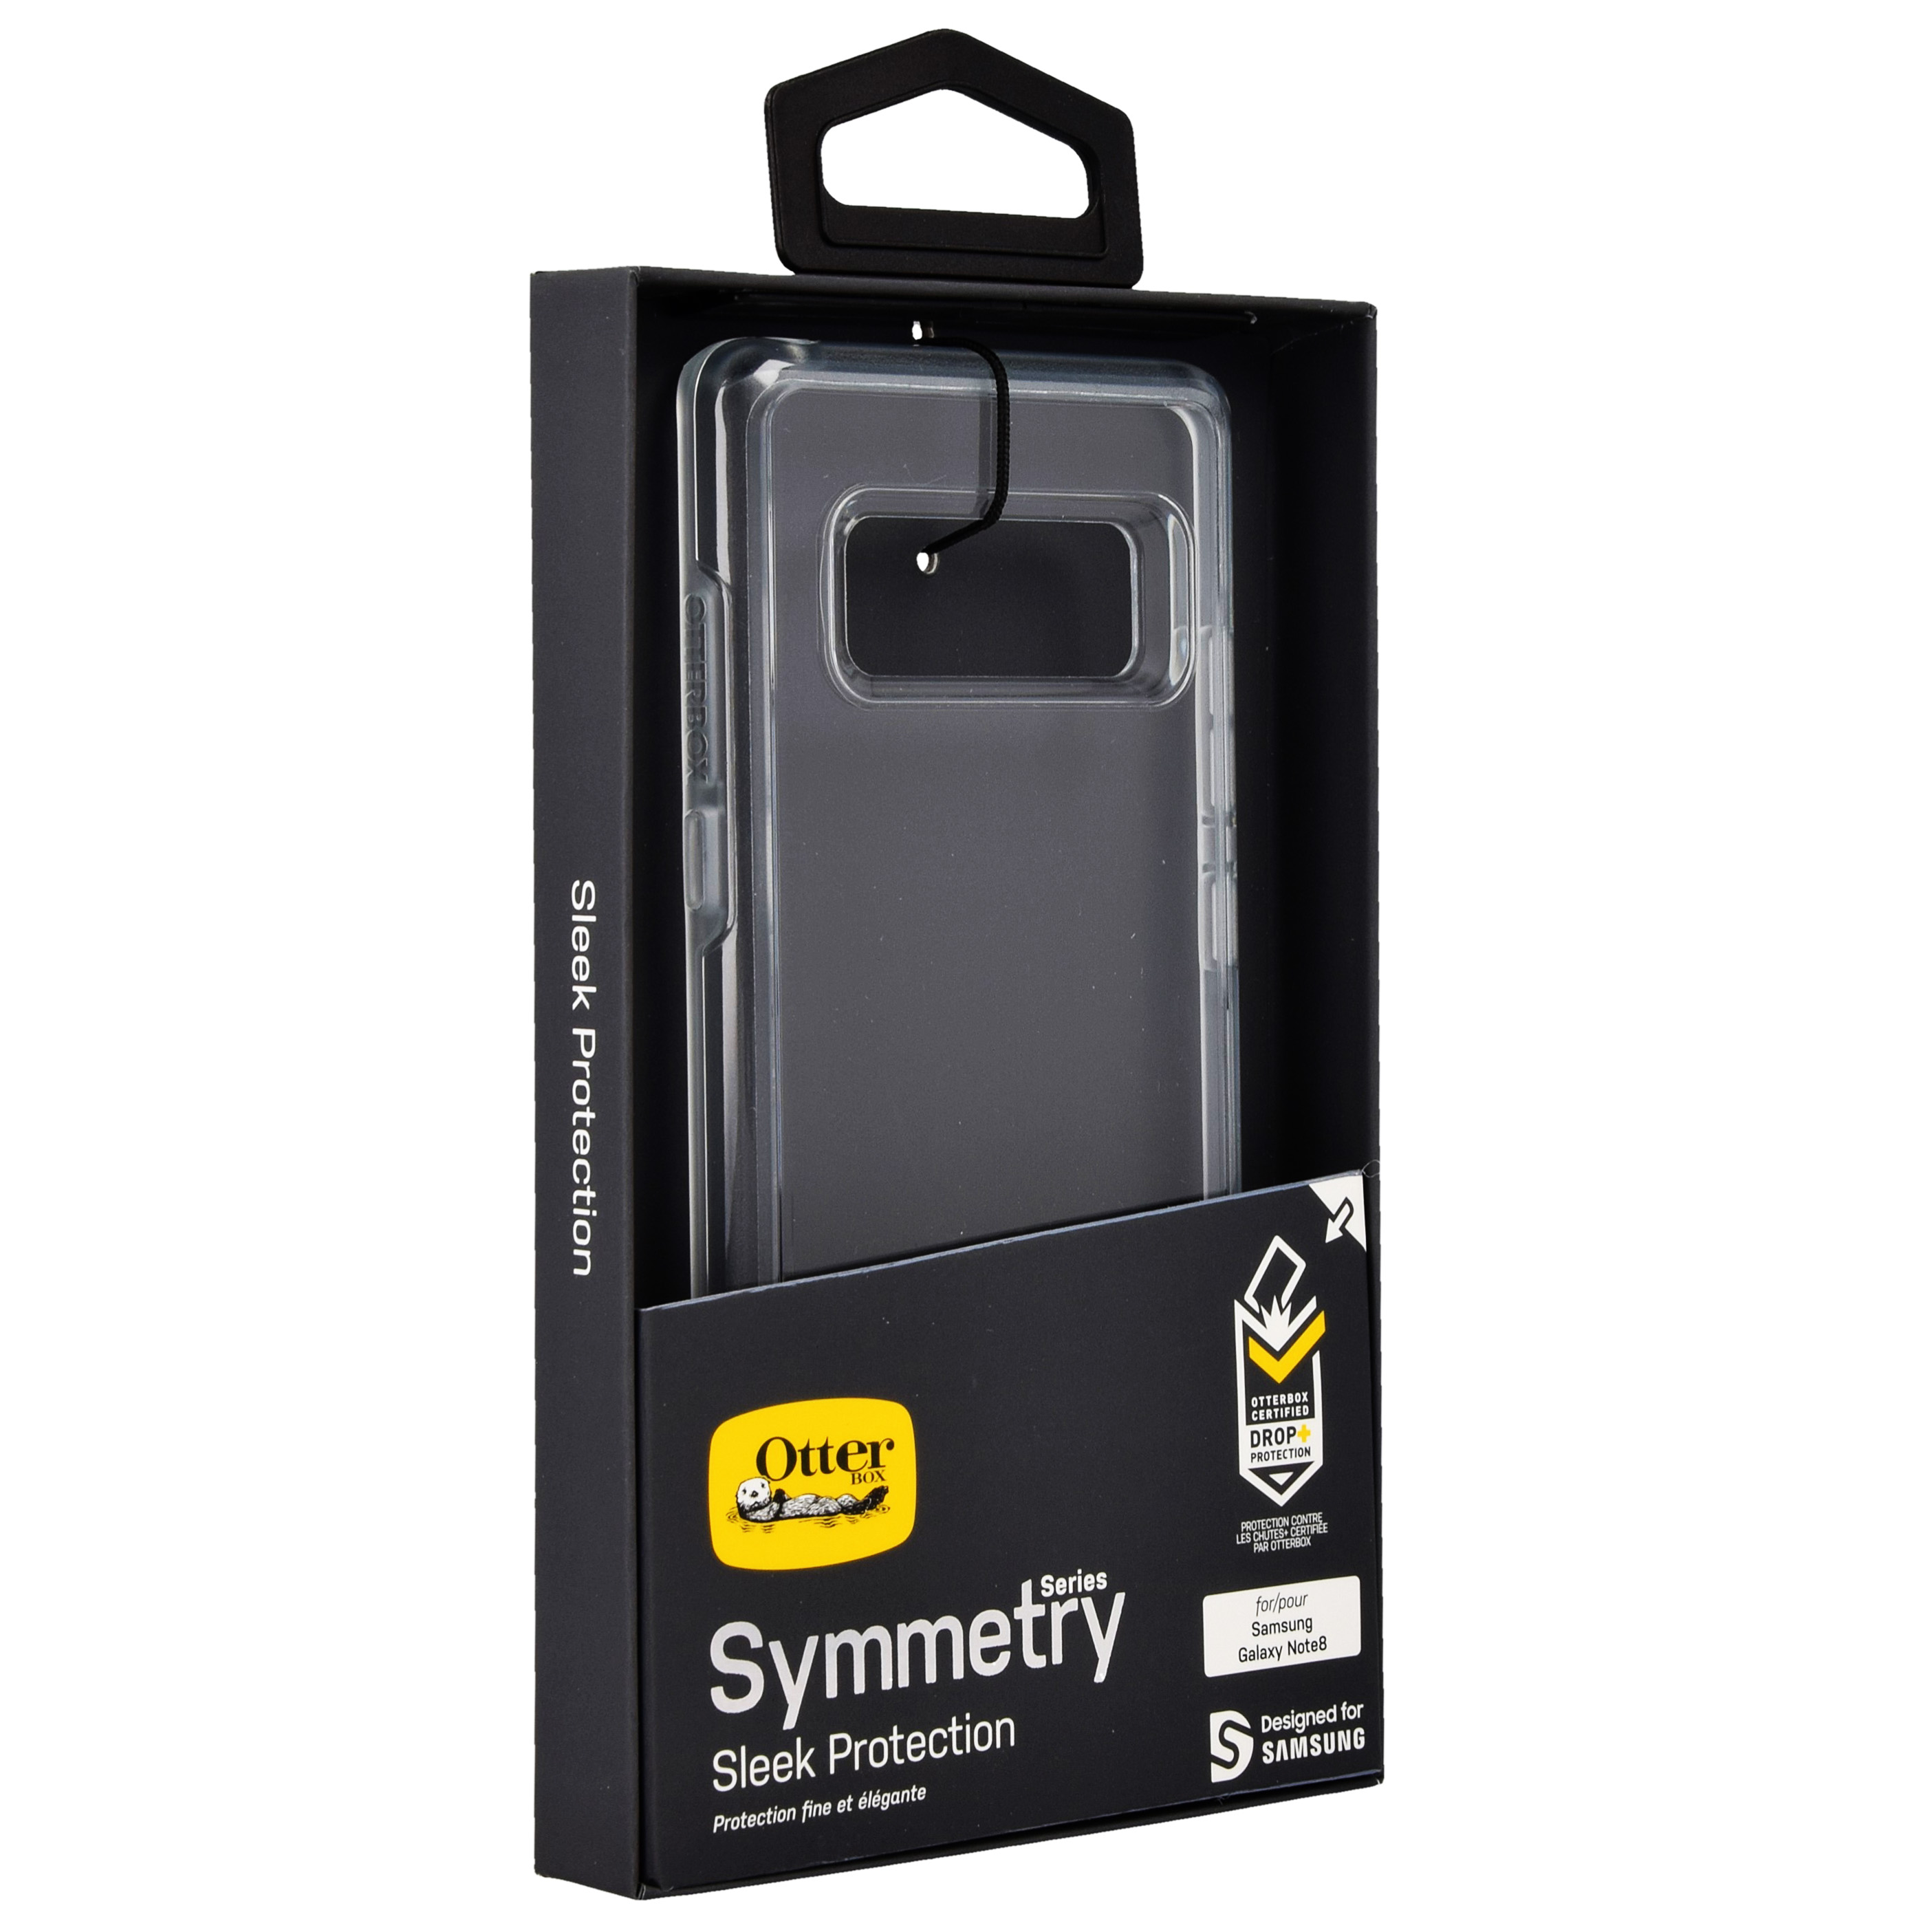 Etui pancerne OtterBox Symmetry Series do Galaxy Note 8, przezroczyste.